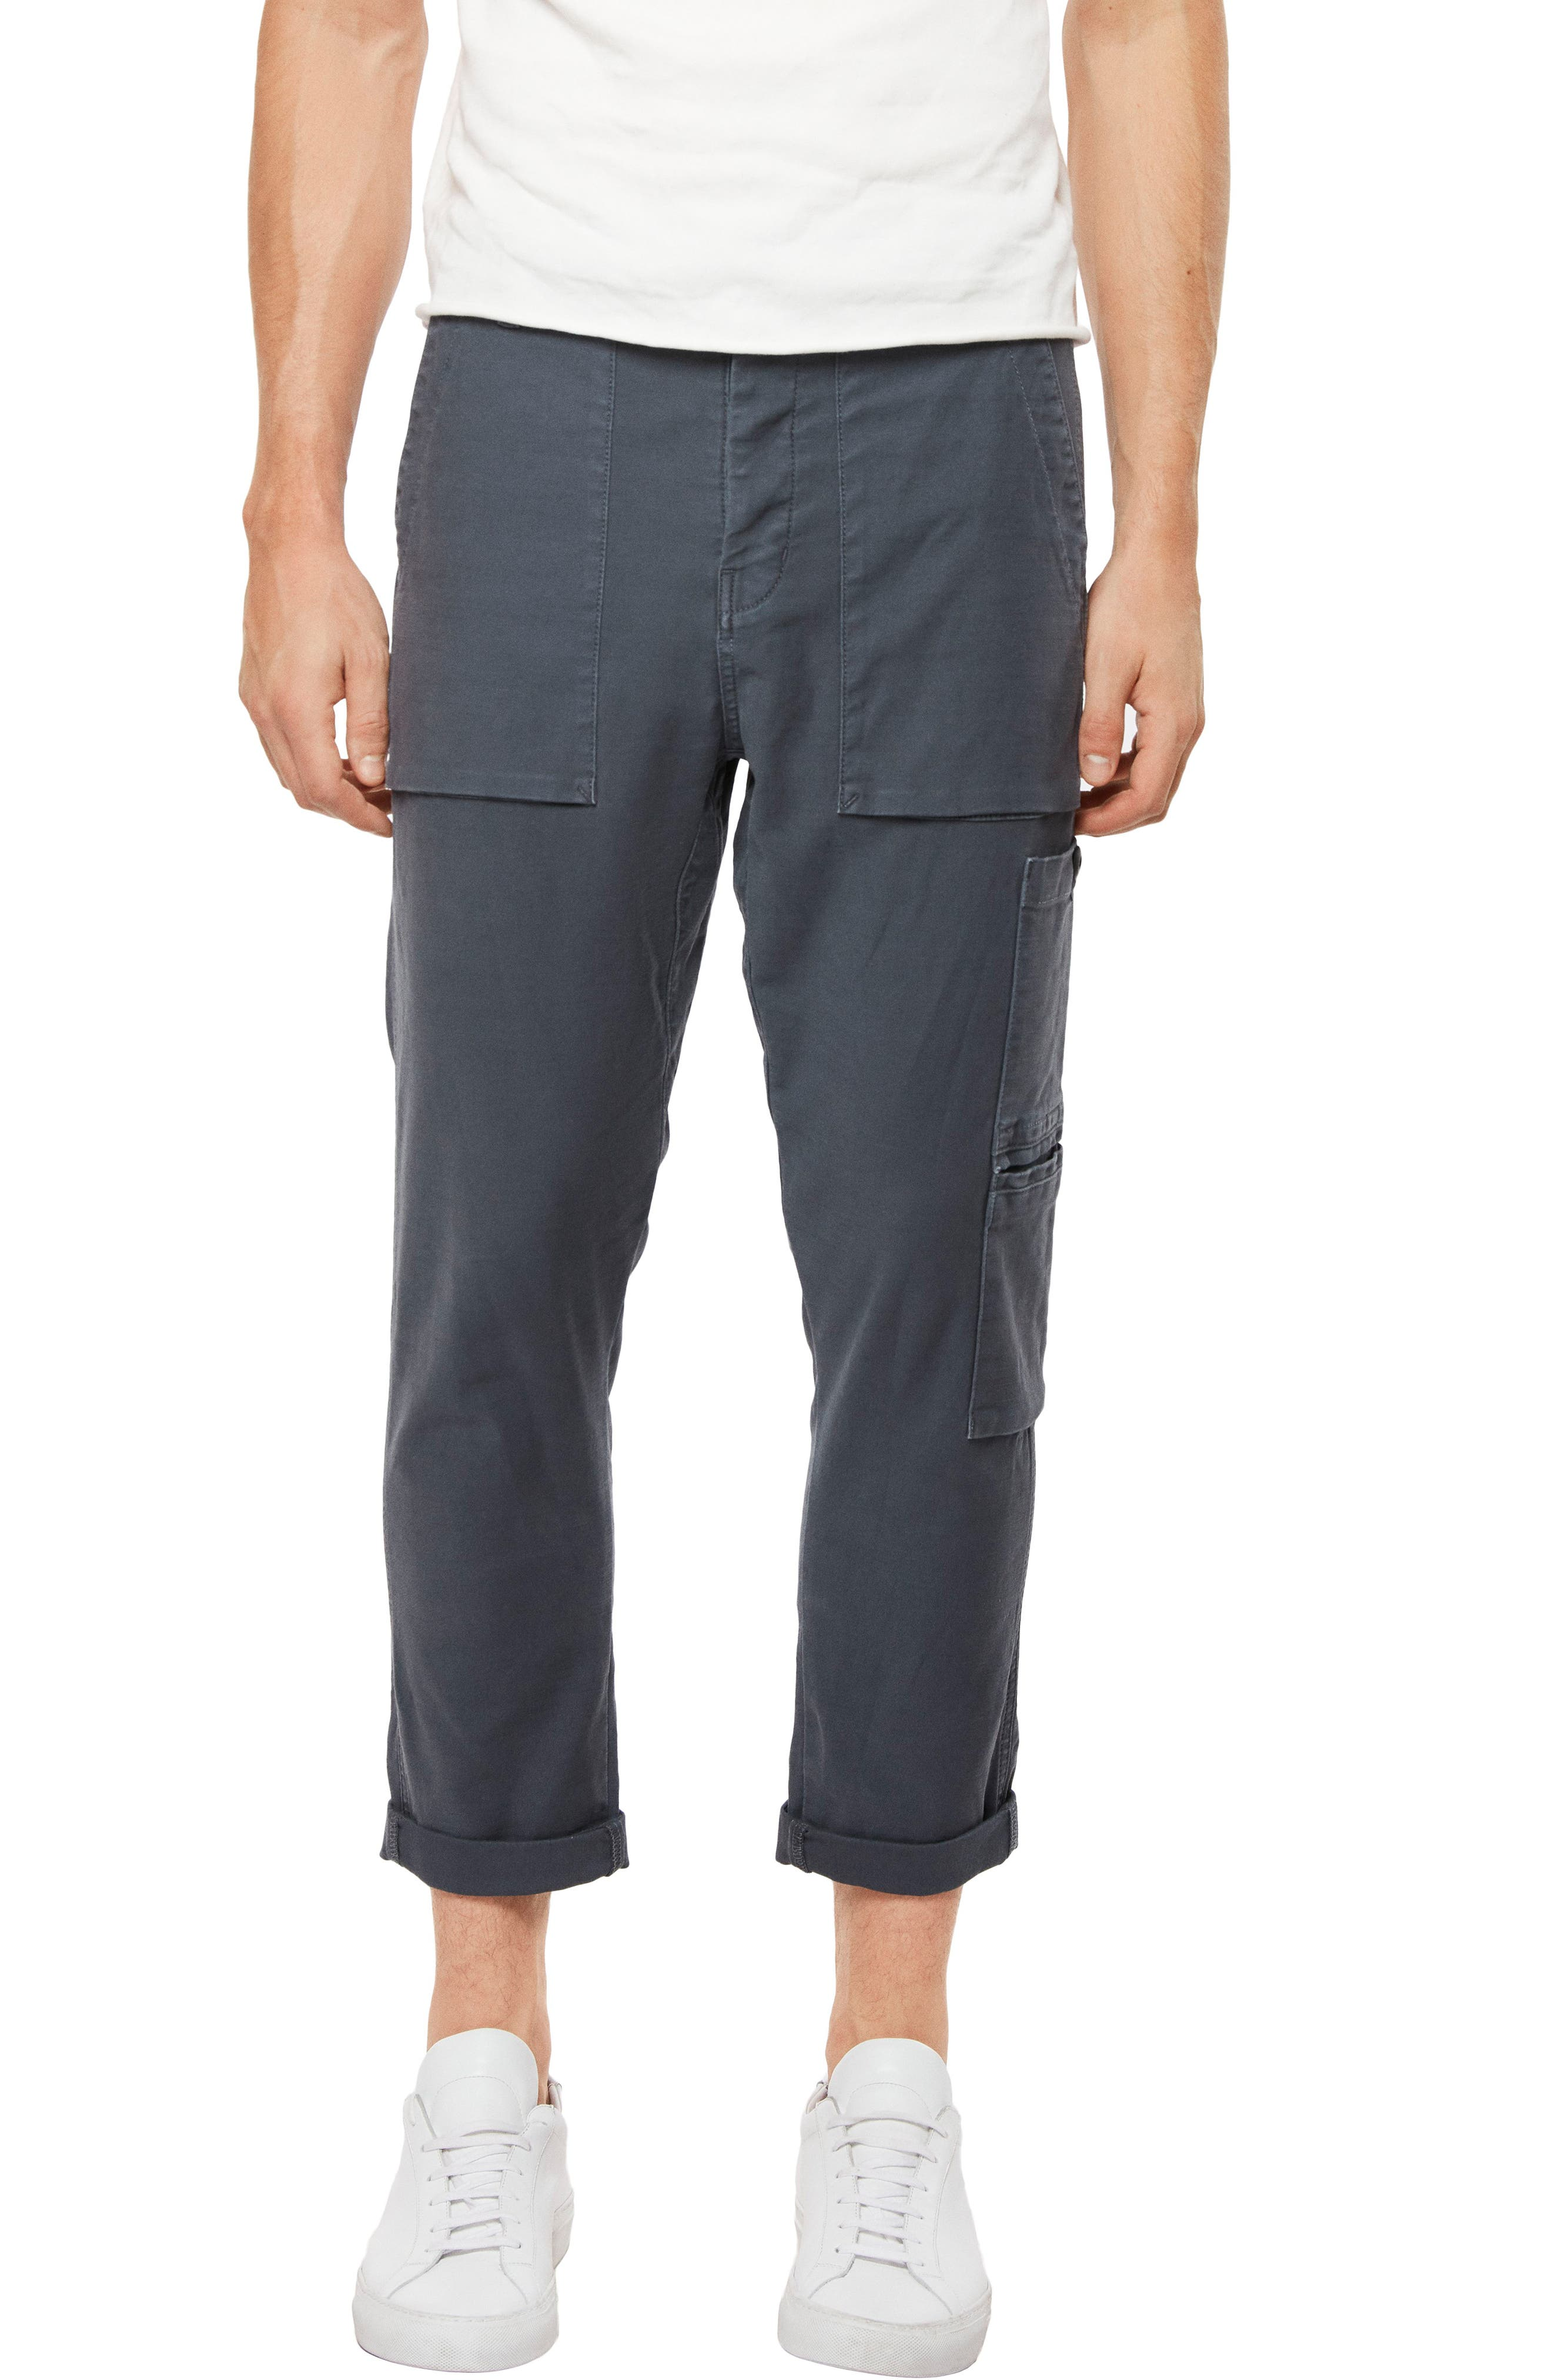 Koeficient Relaxed Fit Cargo Crop Pants,                             Main thumbnail 1, color,                             400